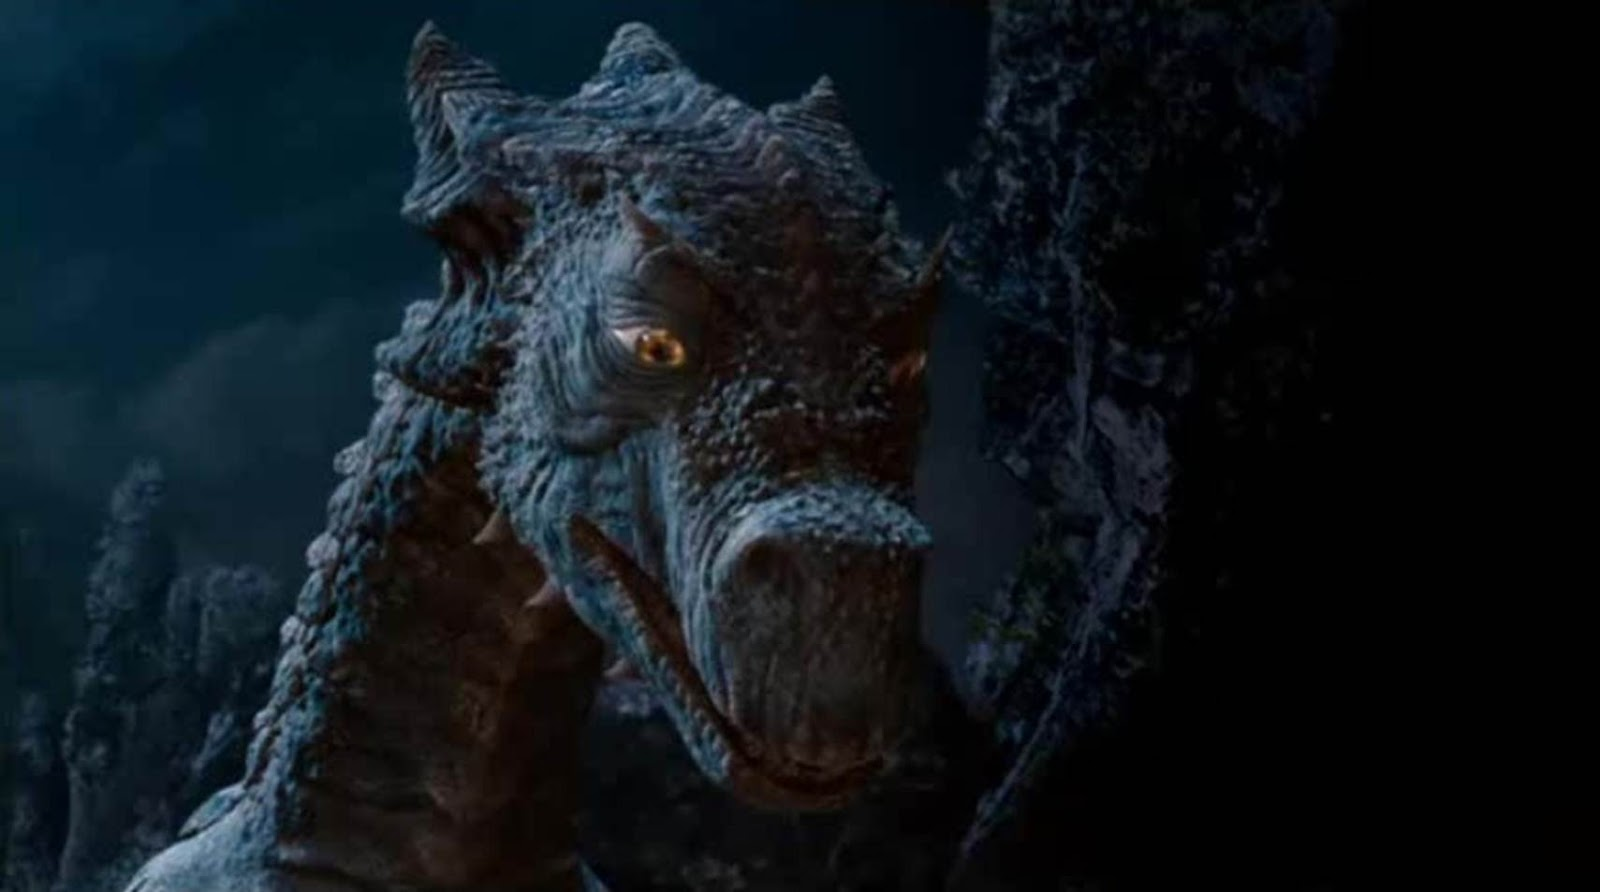 """Merlin Dragon: ...FROM THE FRINGE: """"THAT, MY FRIEND, WAS A DRAGON!"""""""